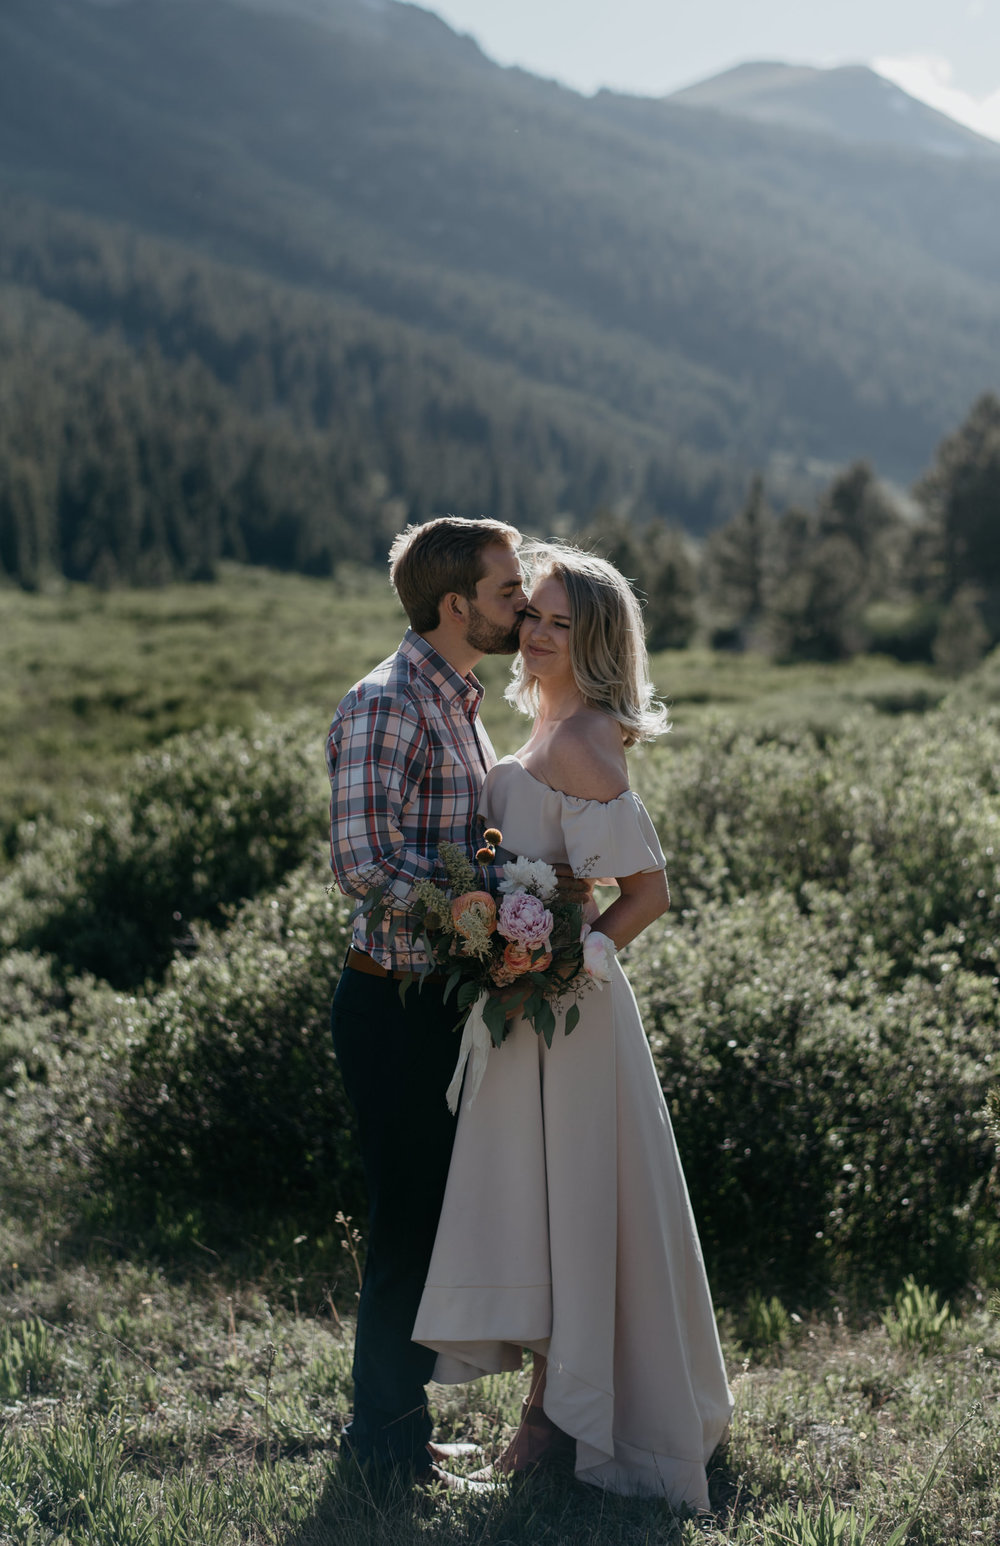 Colorado wedding photographer based in Aspen.